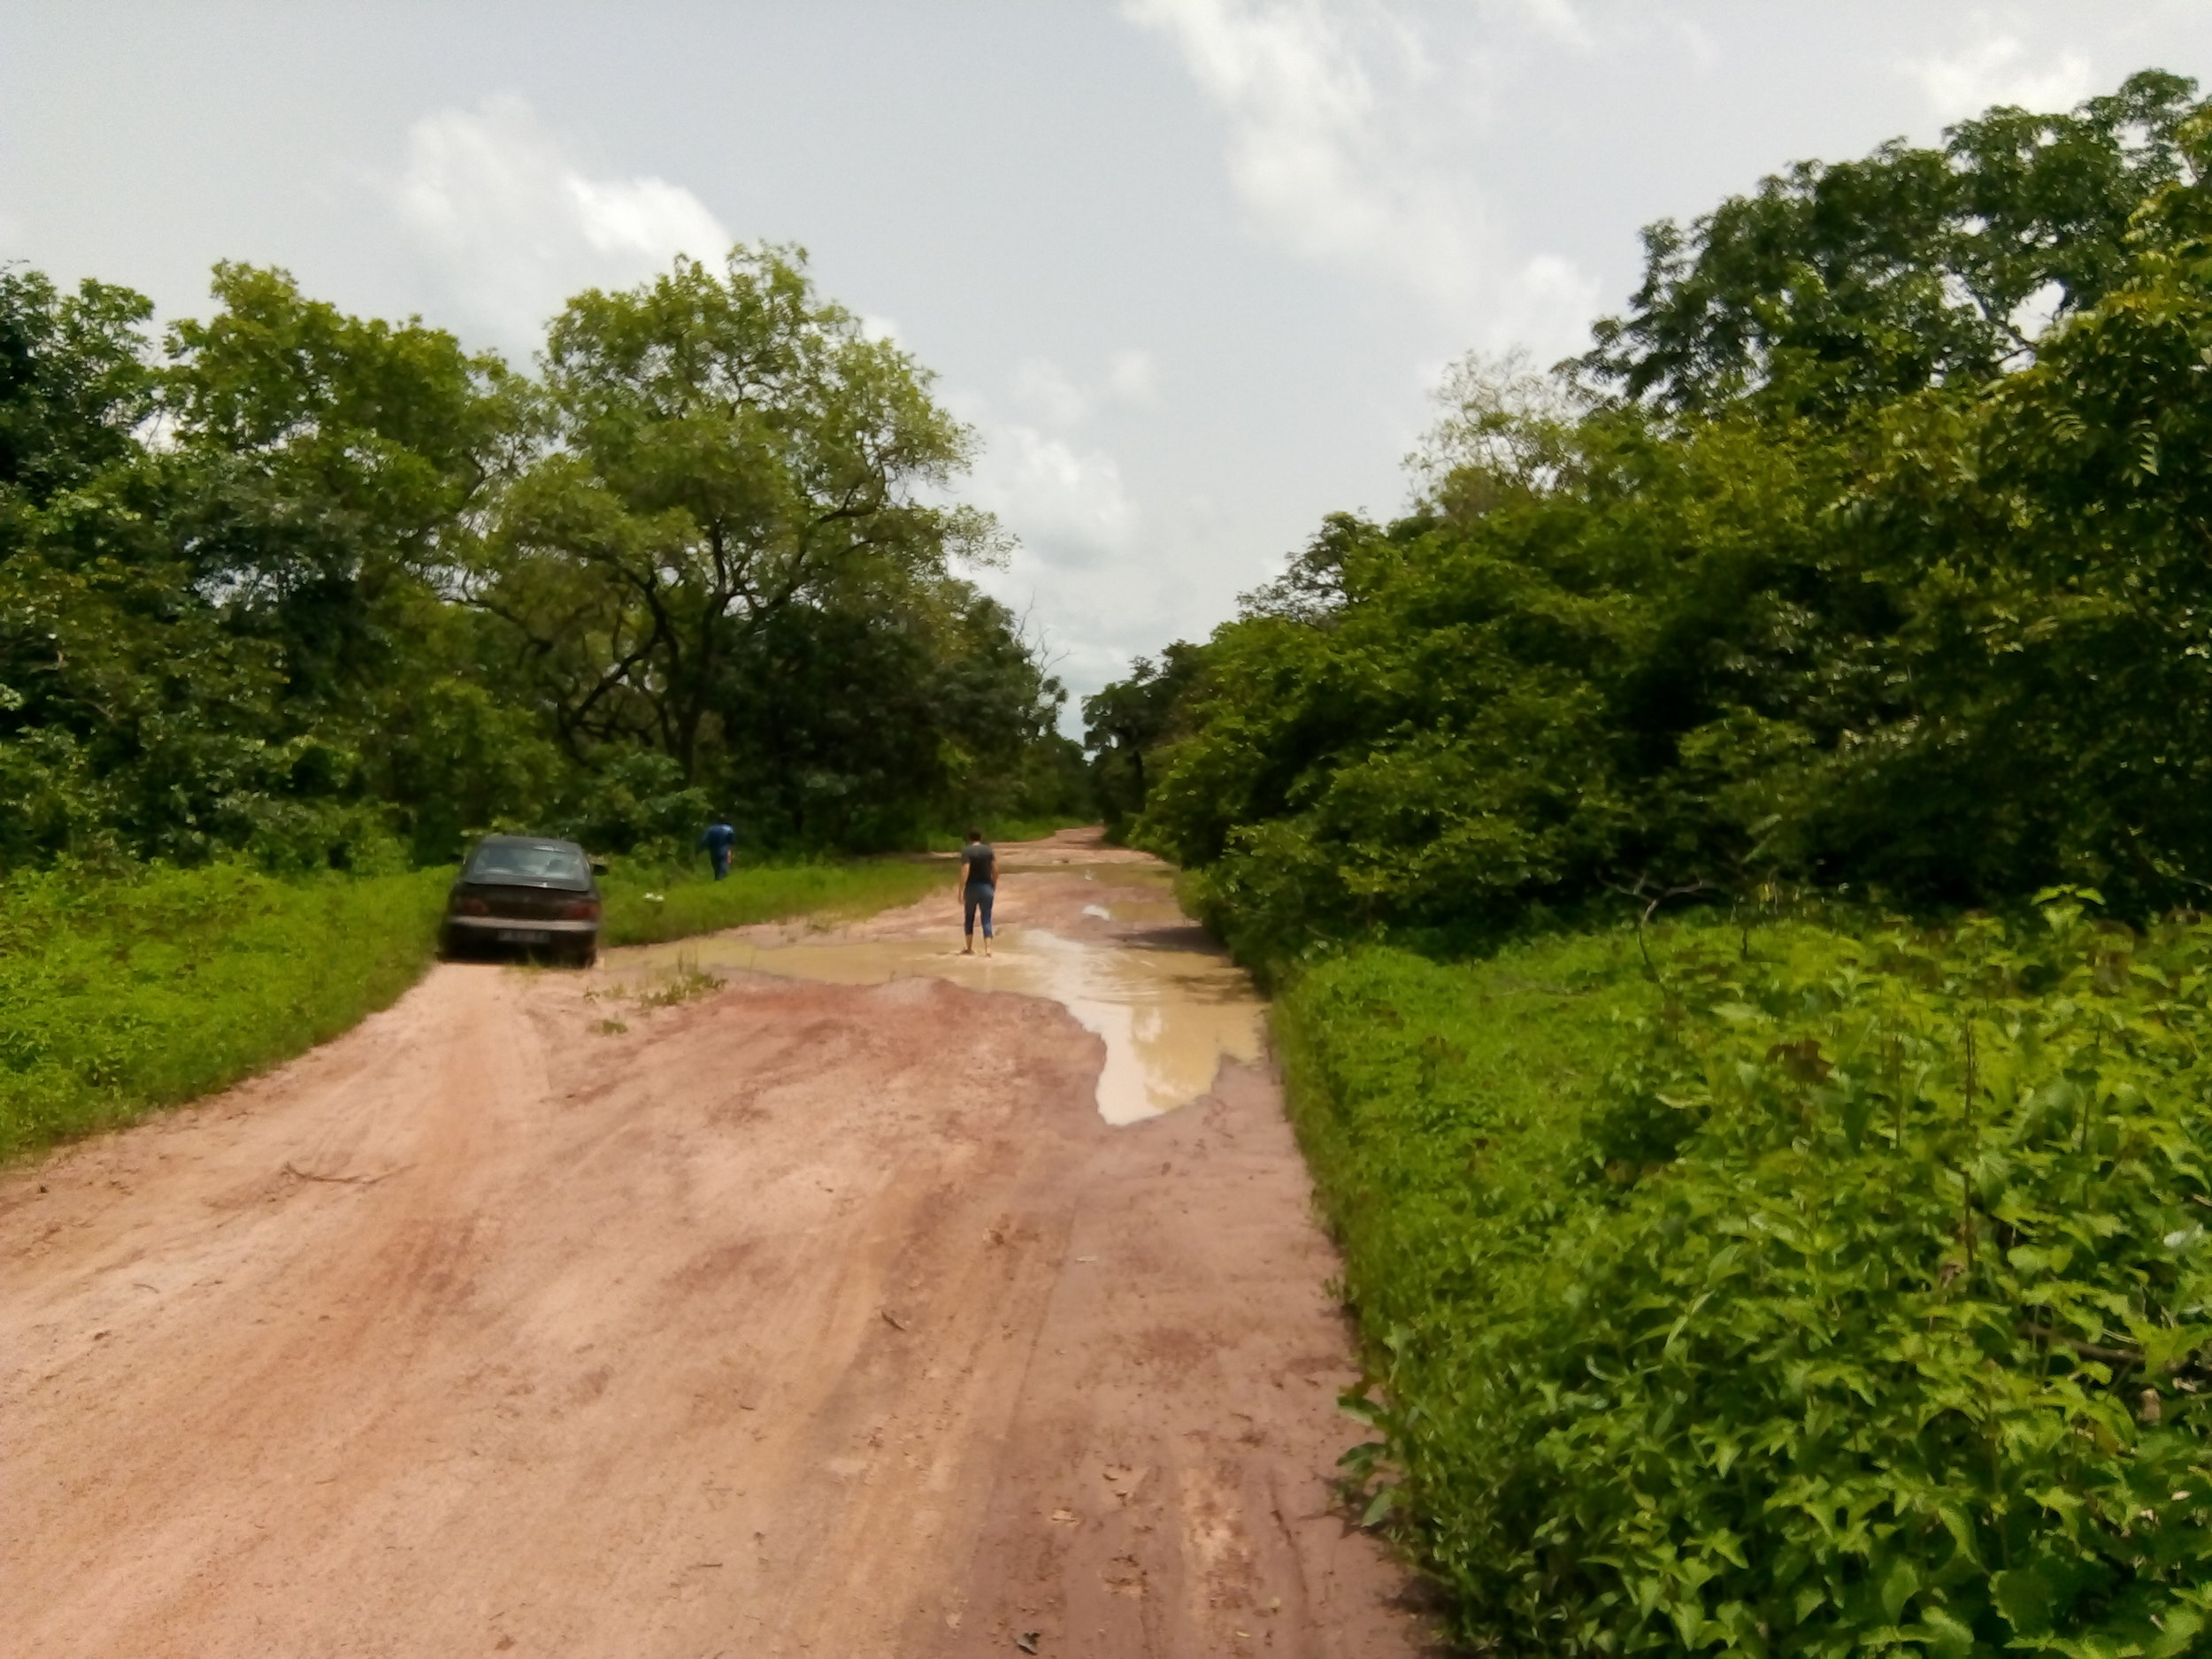 - This photo gives an impression of the condition of the roads in this region: Pierre can be seen wading through a pool of water on the road to check its depth before attempting to drive his vehicle through. Credit: Baobab des Saveurs